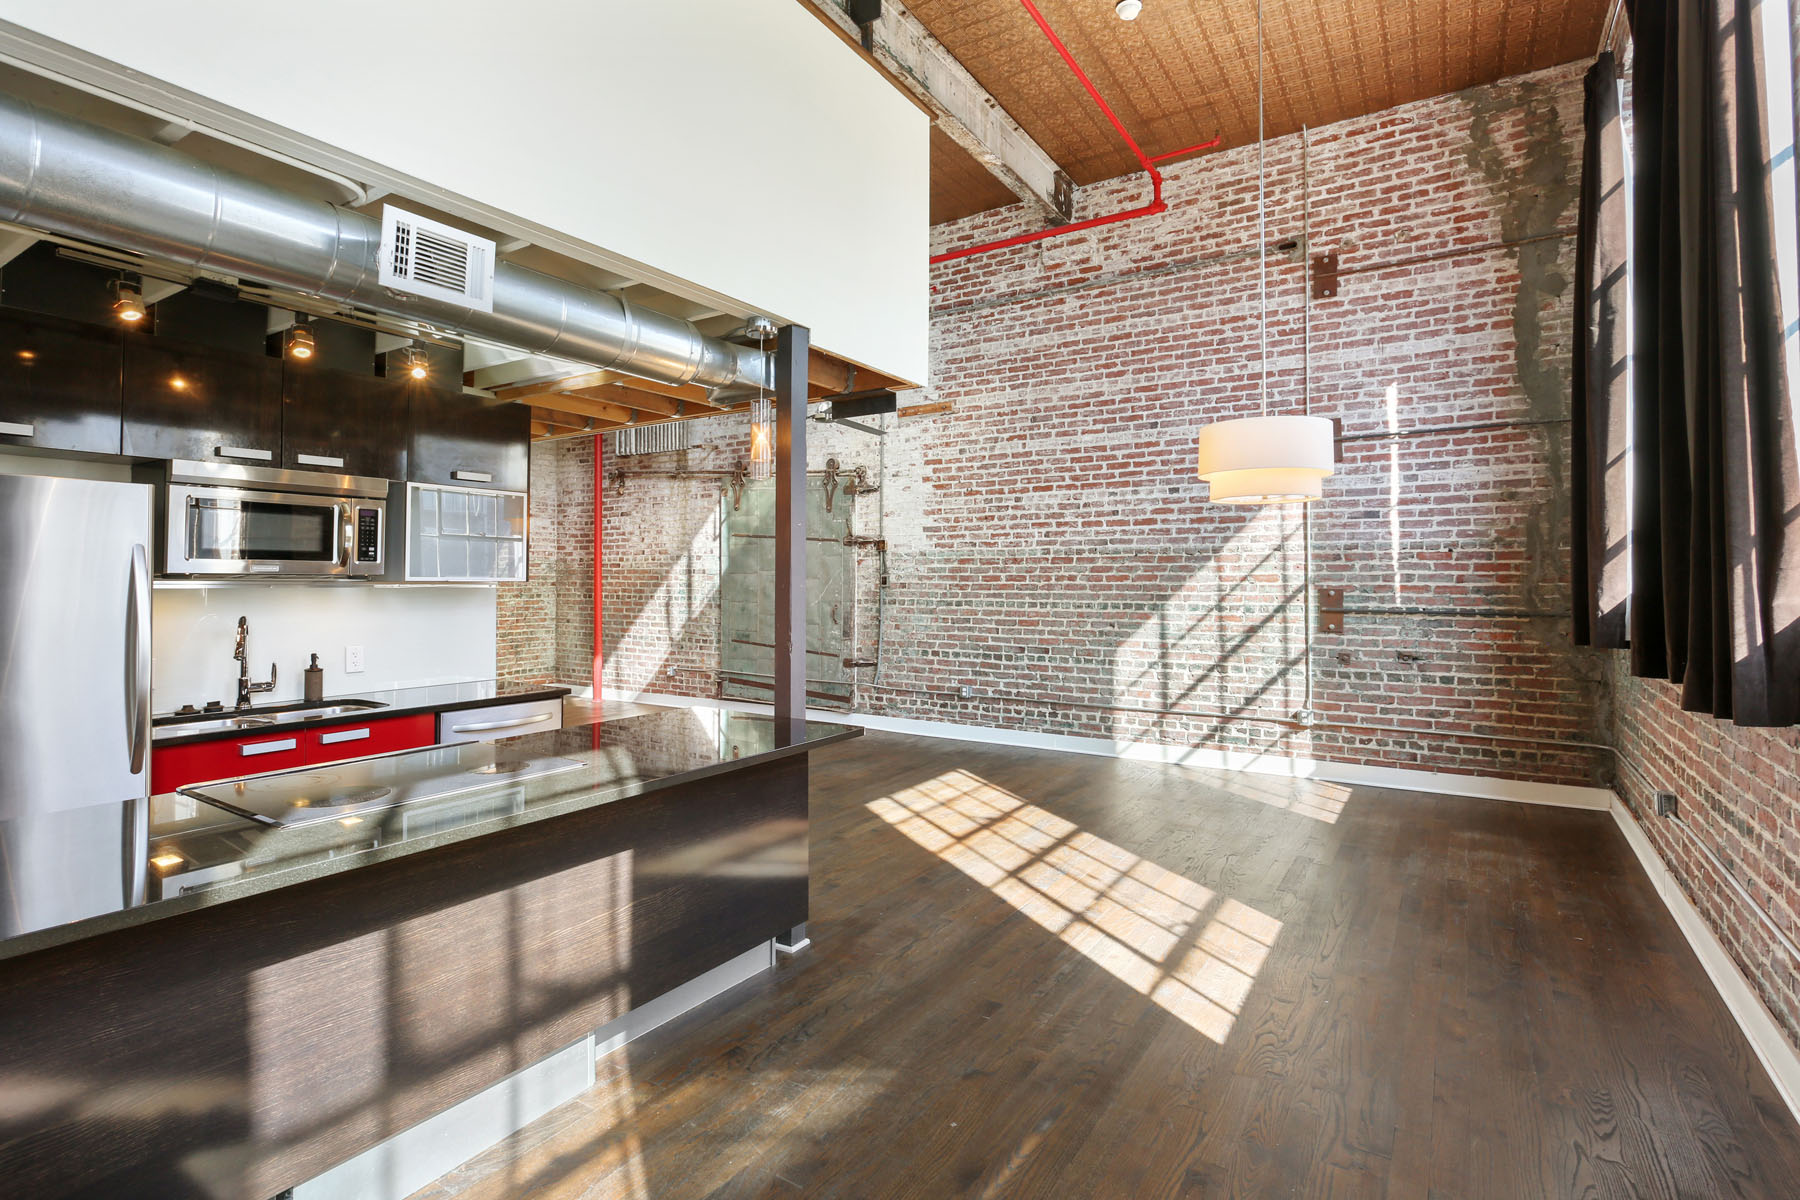 Кондоминиум для того Продажа на Gorgeous Authentic Loft in Prime Old Fourth Ward Location 650 Glen Iris Drive NE Unit 23, Atlanta, Джорджия, 30308 Соединенные Штаты